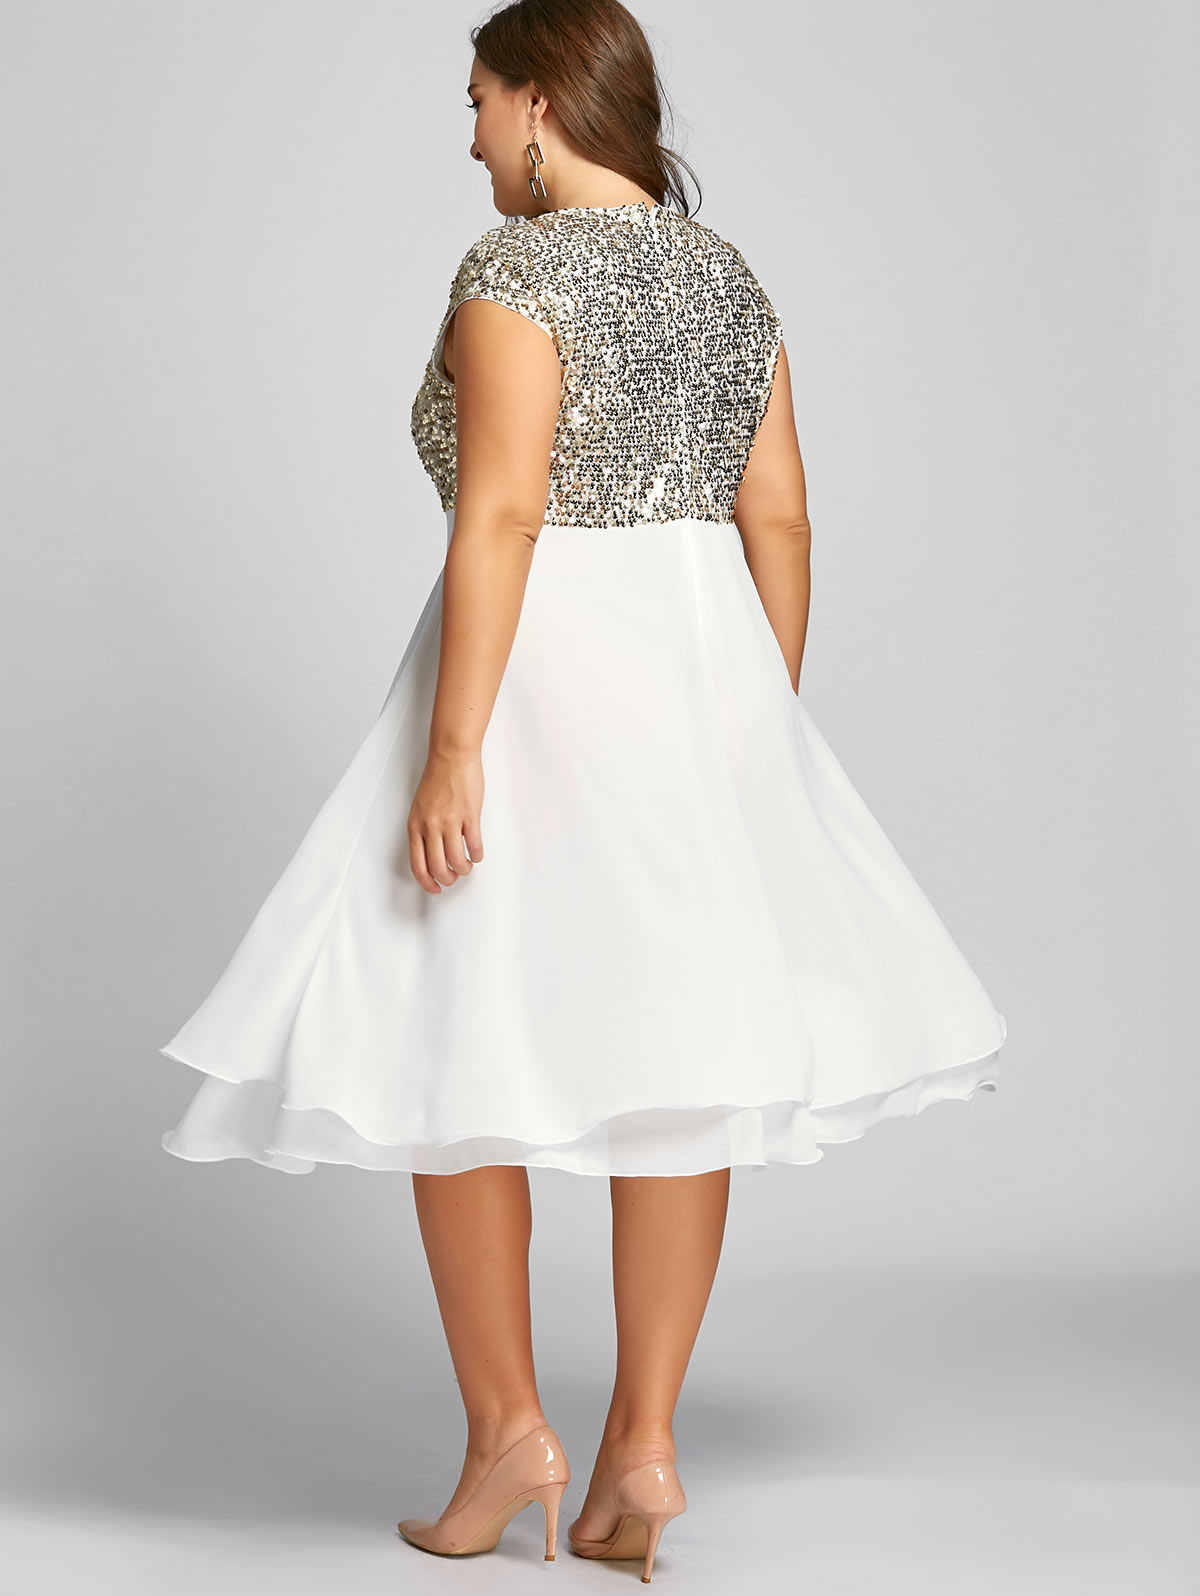 Wipalo Plus Size 5XL Sequin Sparkly Dress Women Flounce Robe Female Short  Sleeves Party Dress Ball Gown Knee-Length Vestidos